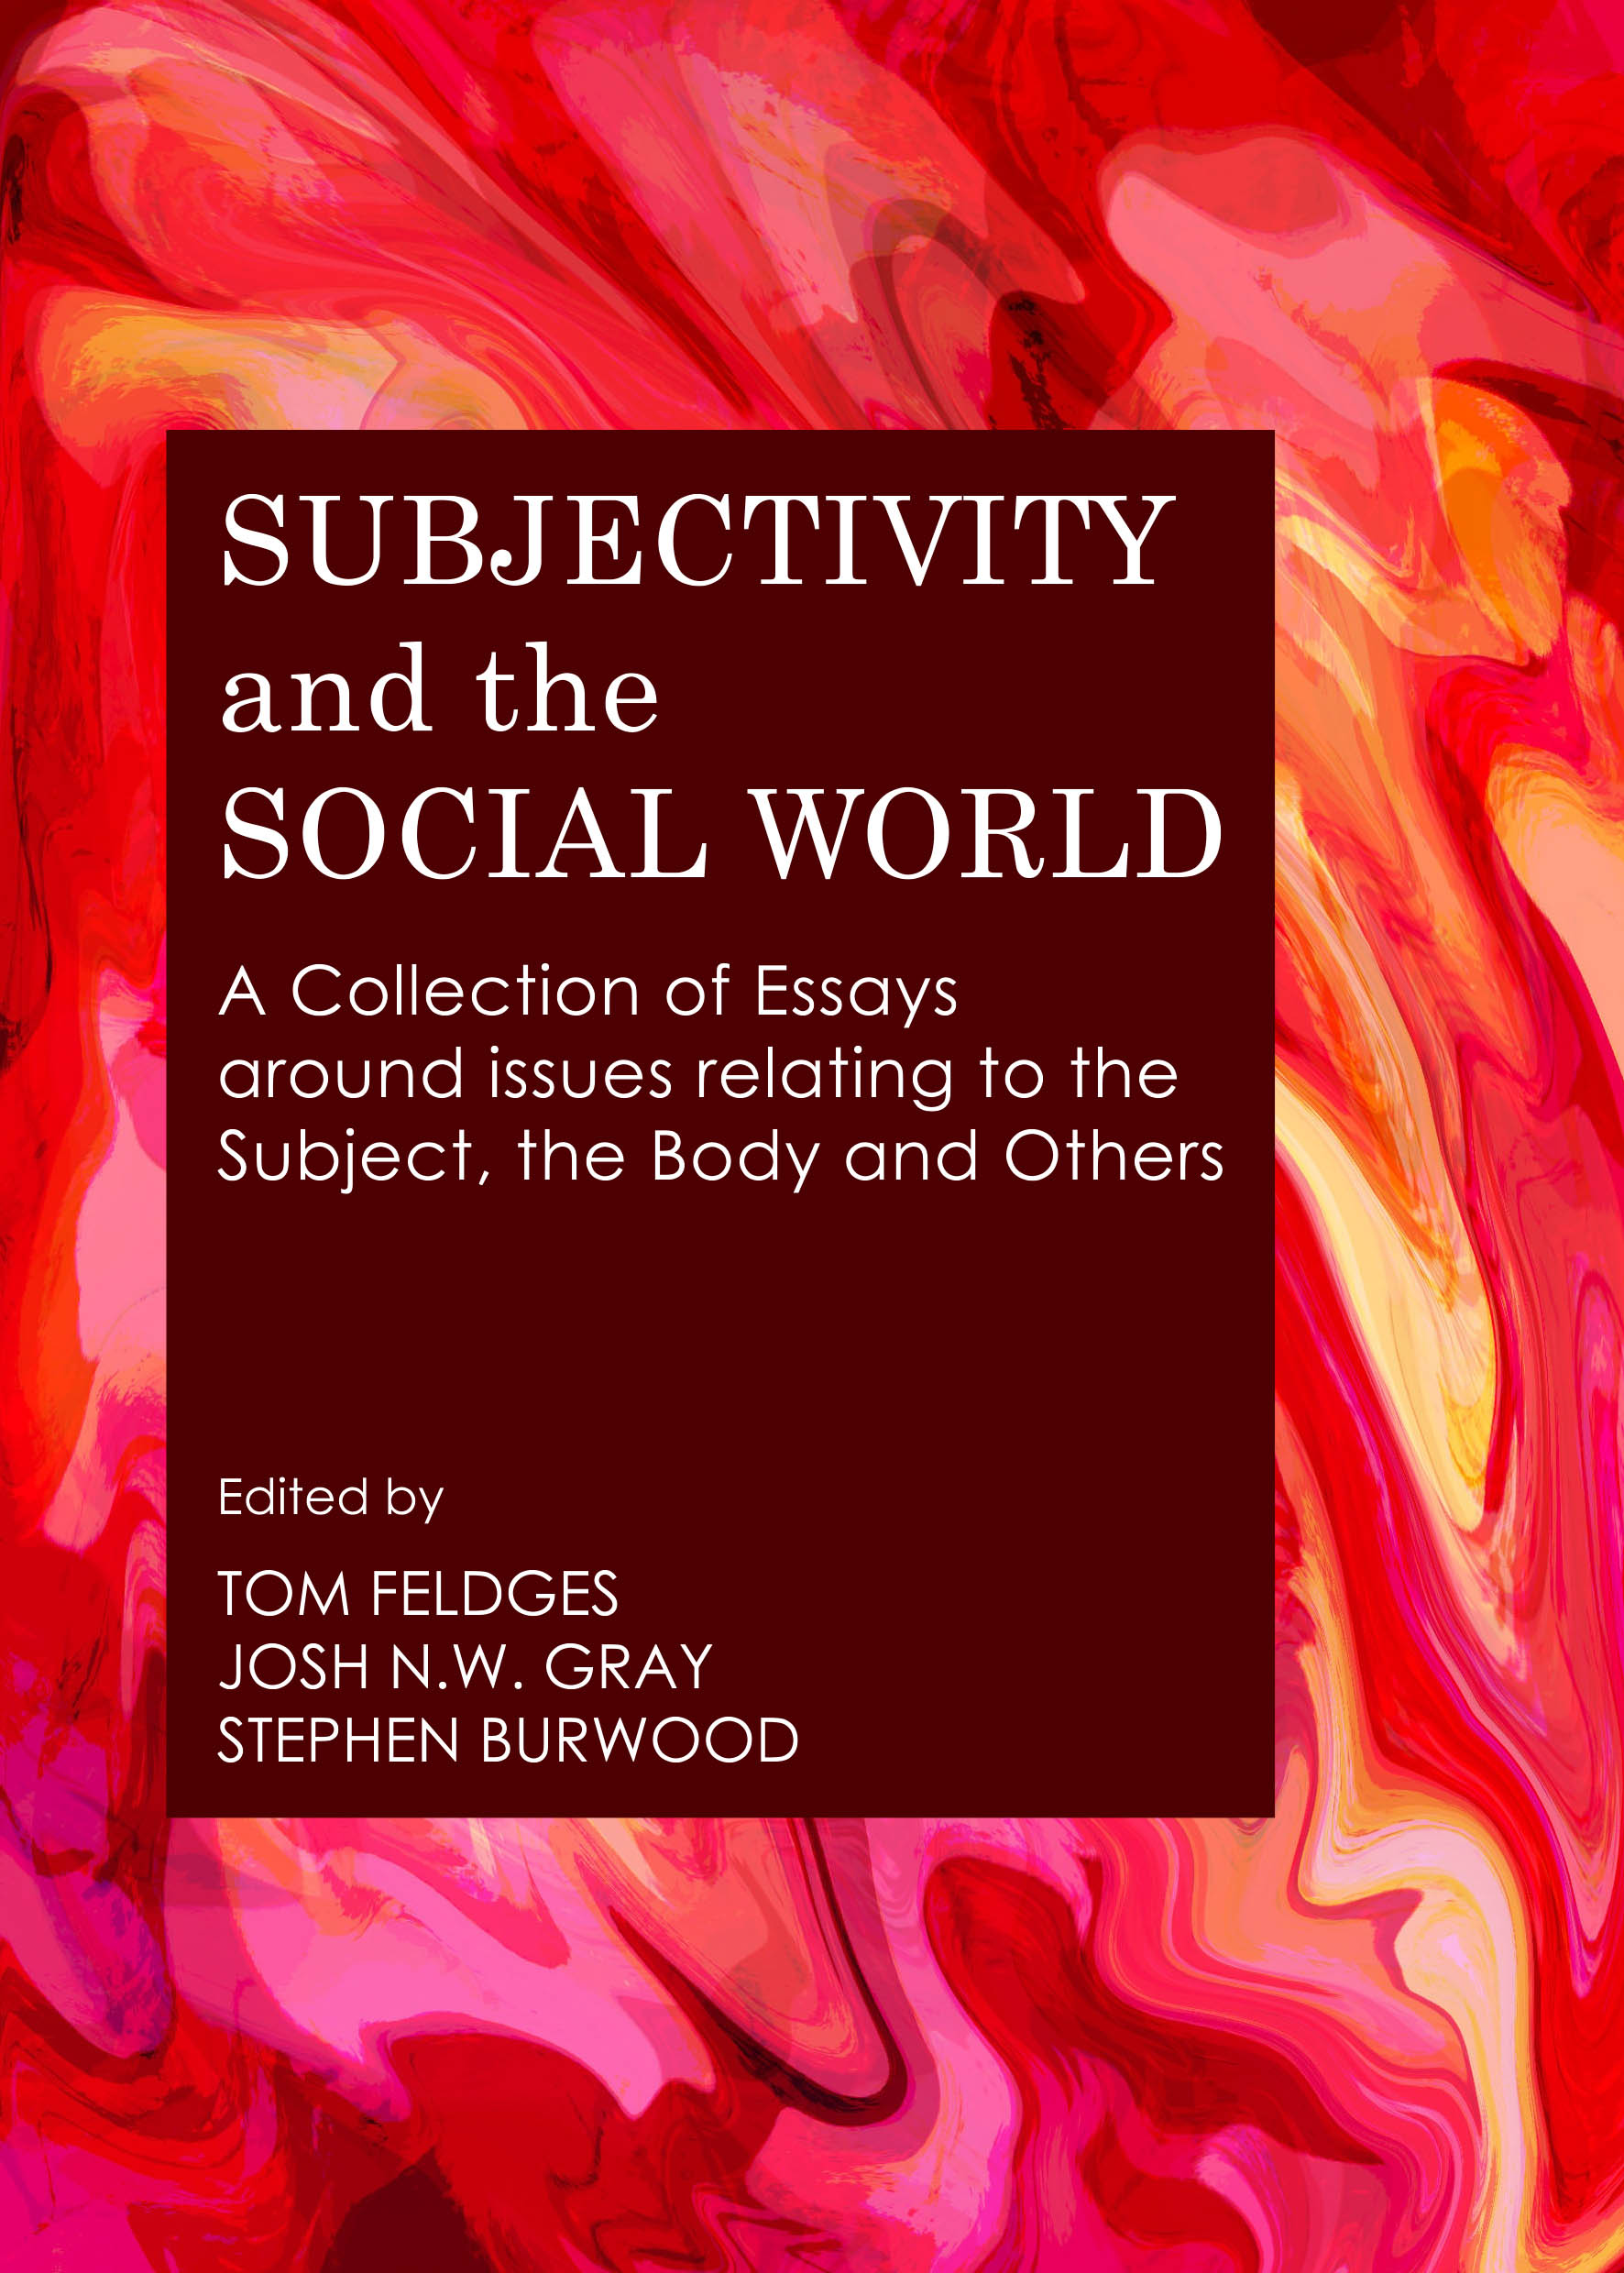 Subjectivity and the Social World: A Collection of Essays around issues relating to the Subject, the Body and Others